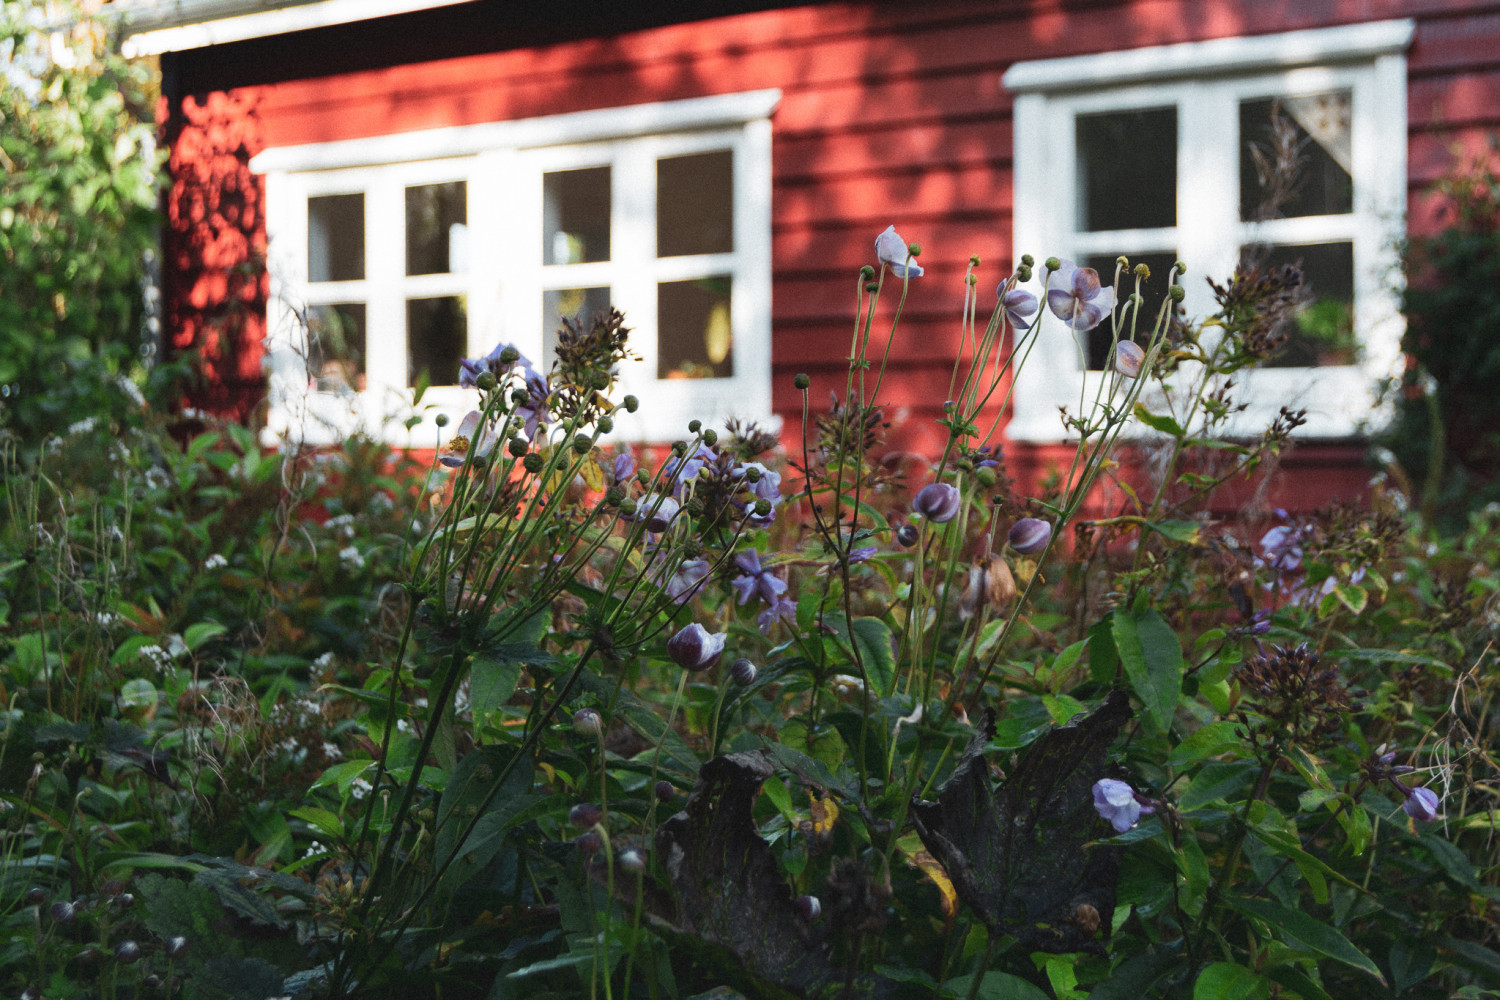 house, wooden house, flowers, garden, hus, træhus, blomster, have, stories by holst